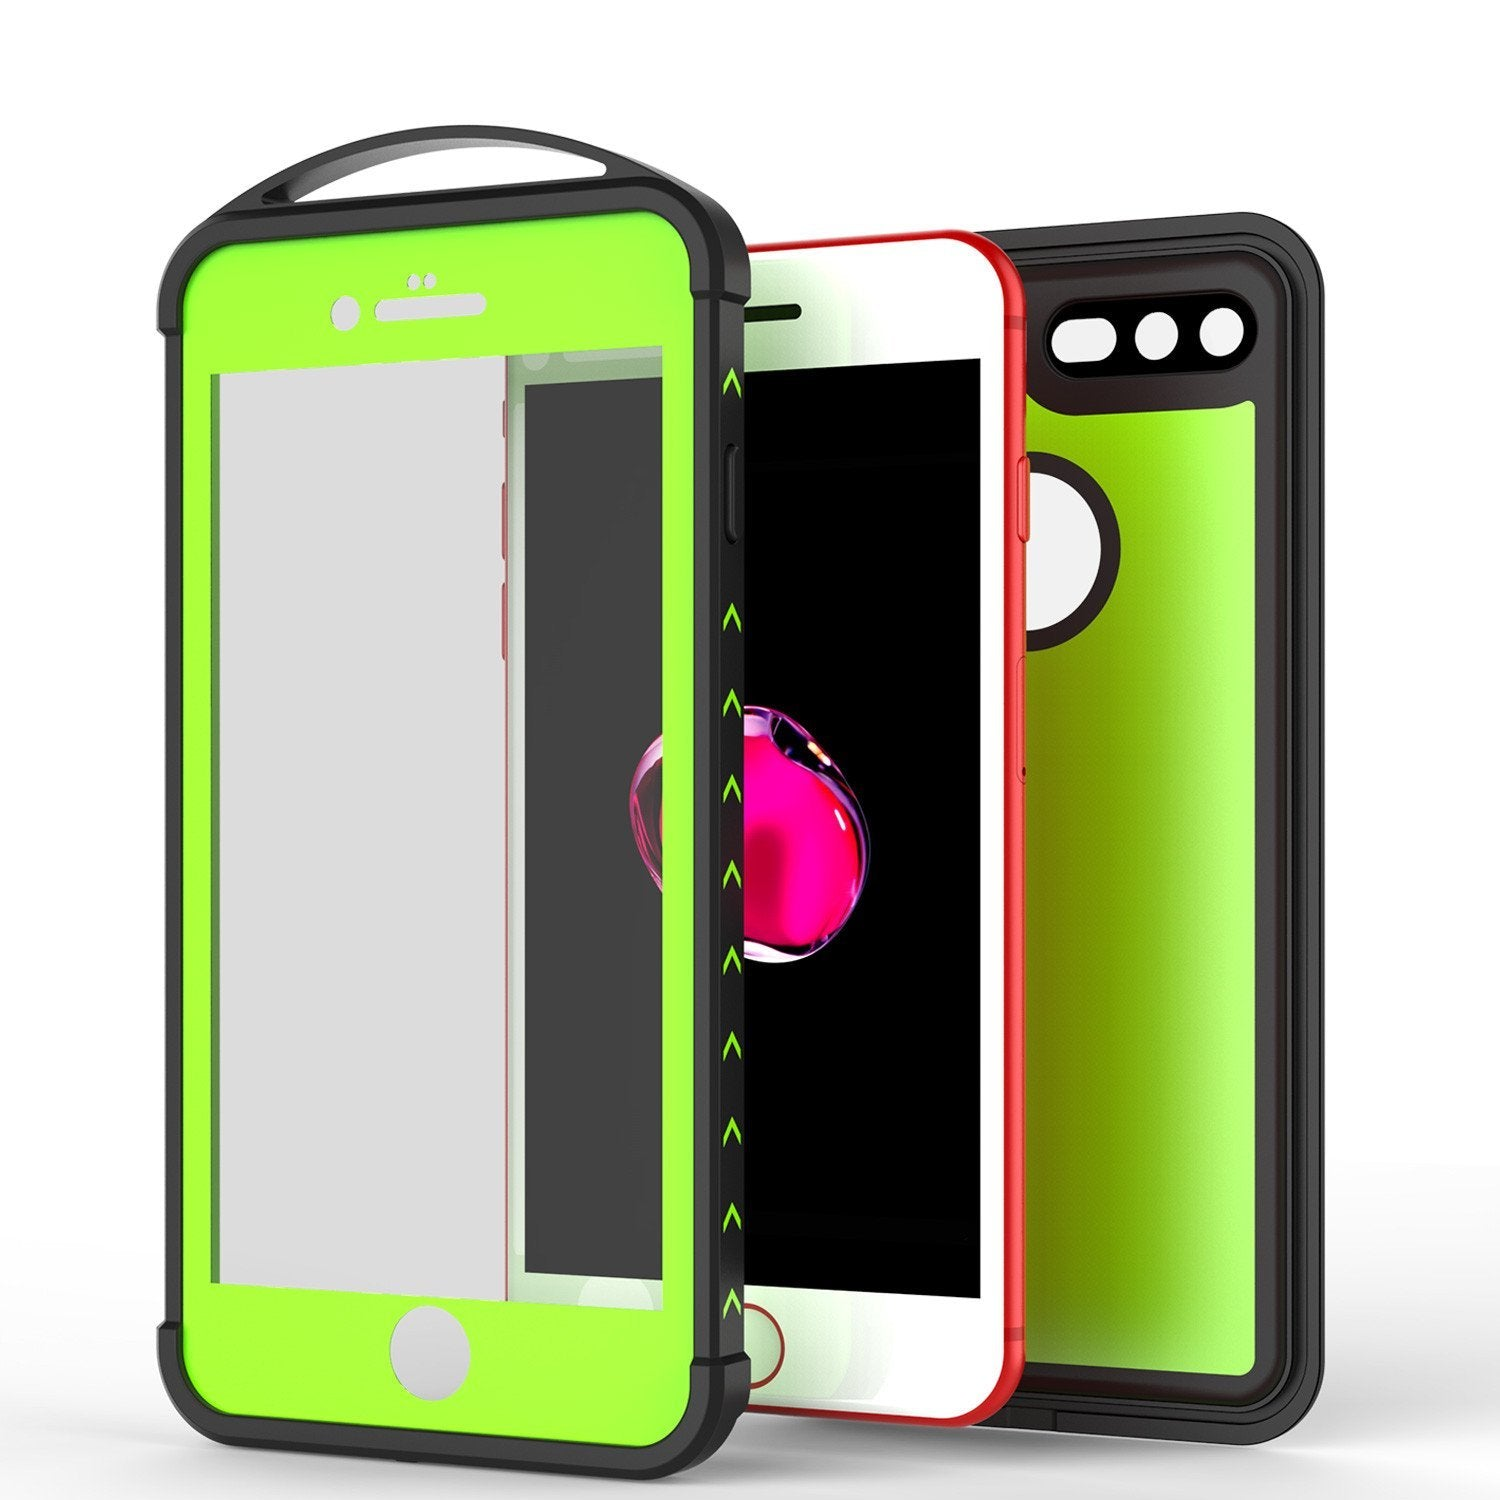 iPhone 8+ Plus Waterproof Case, Punkcase ALPINE Series, Light Green | Heavy Duty Armor Cover